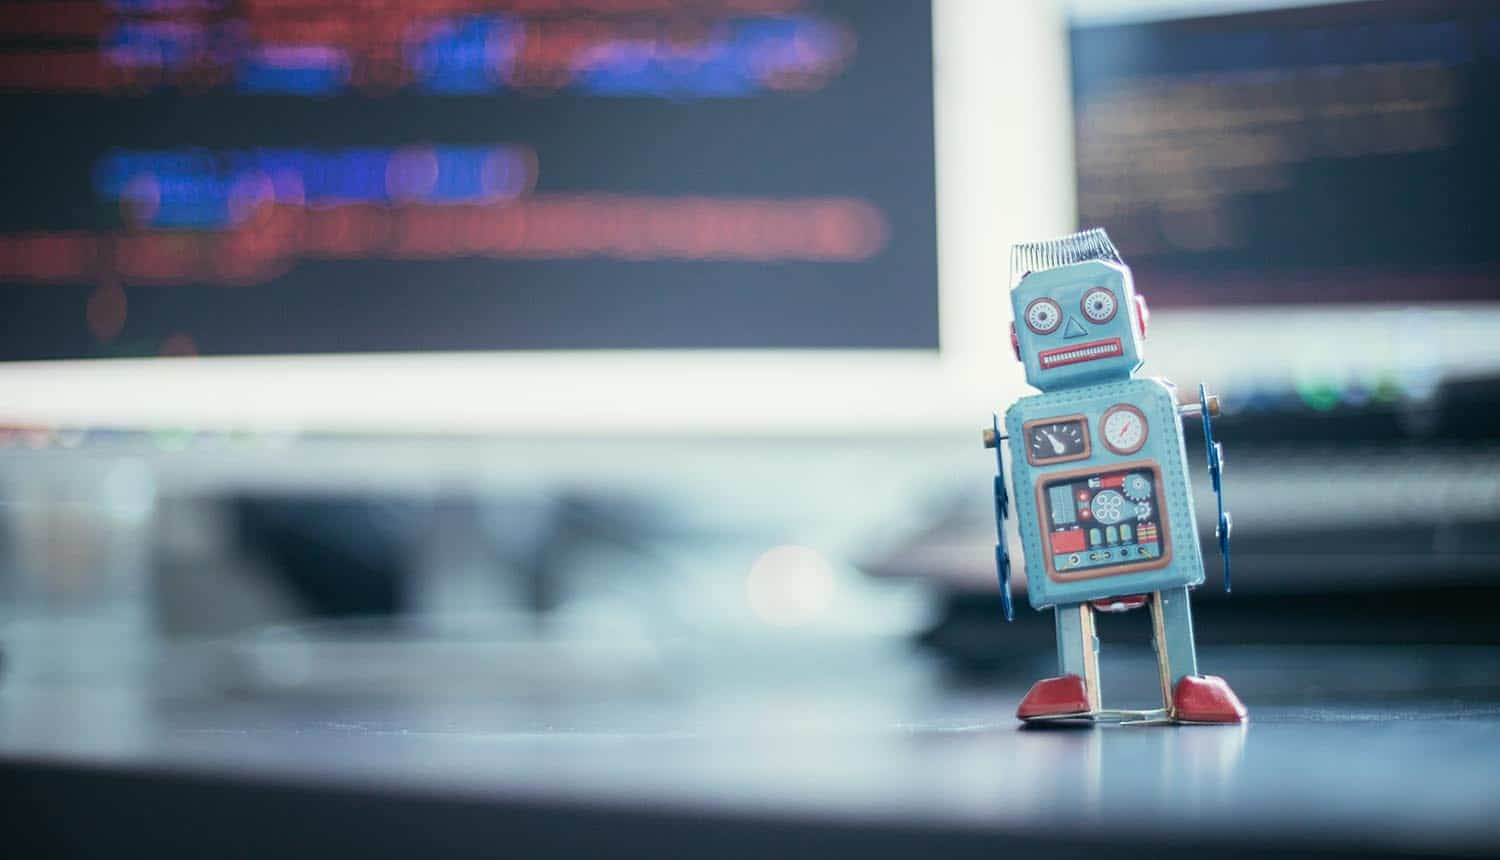 Toy robot in front of screens with program code showing bot traffic